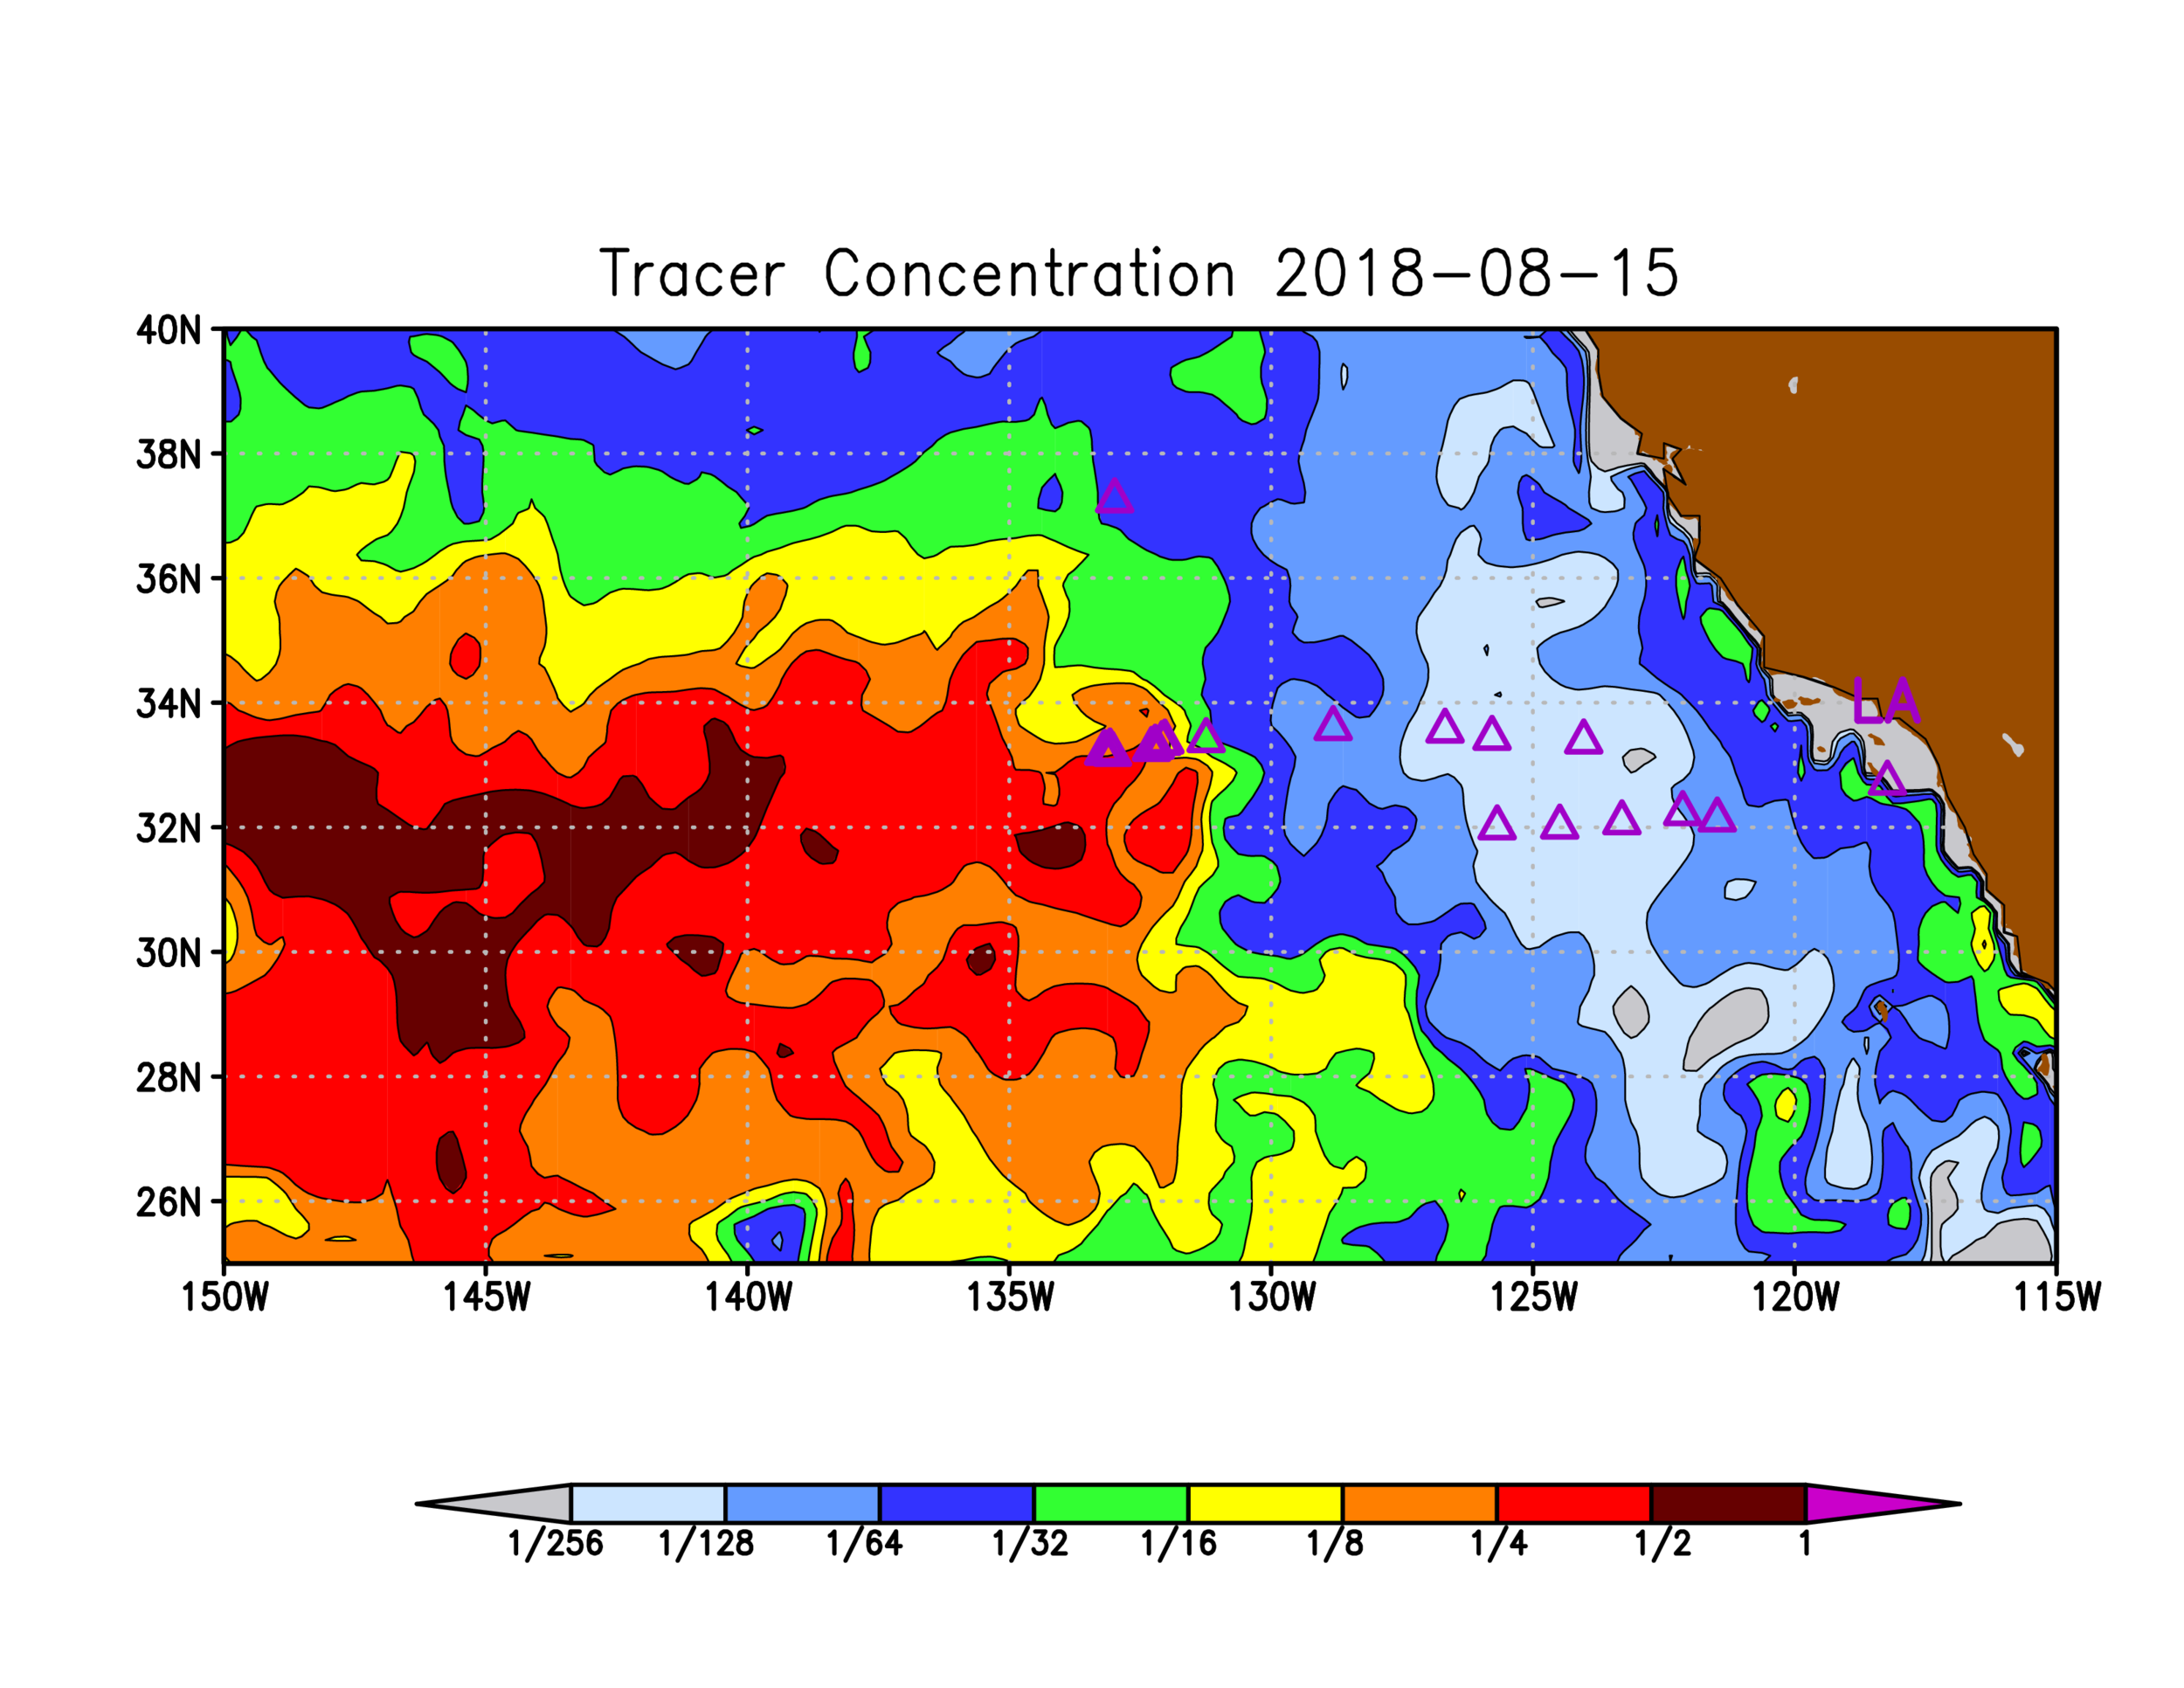 scaled_CONC_daily_algalita_stations_2018-08-15.png